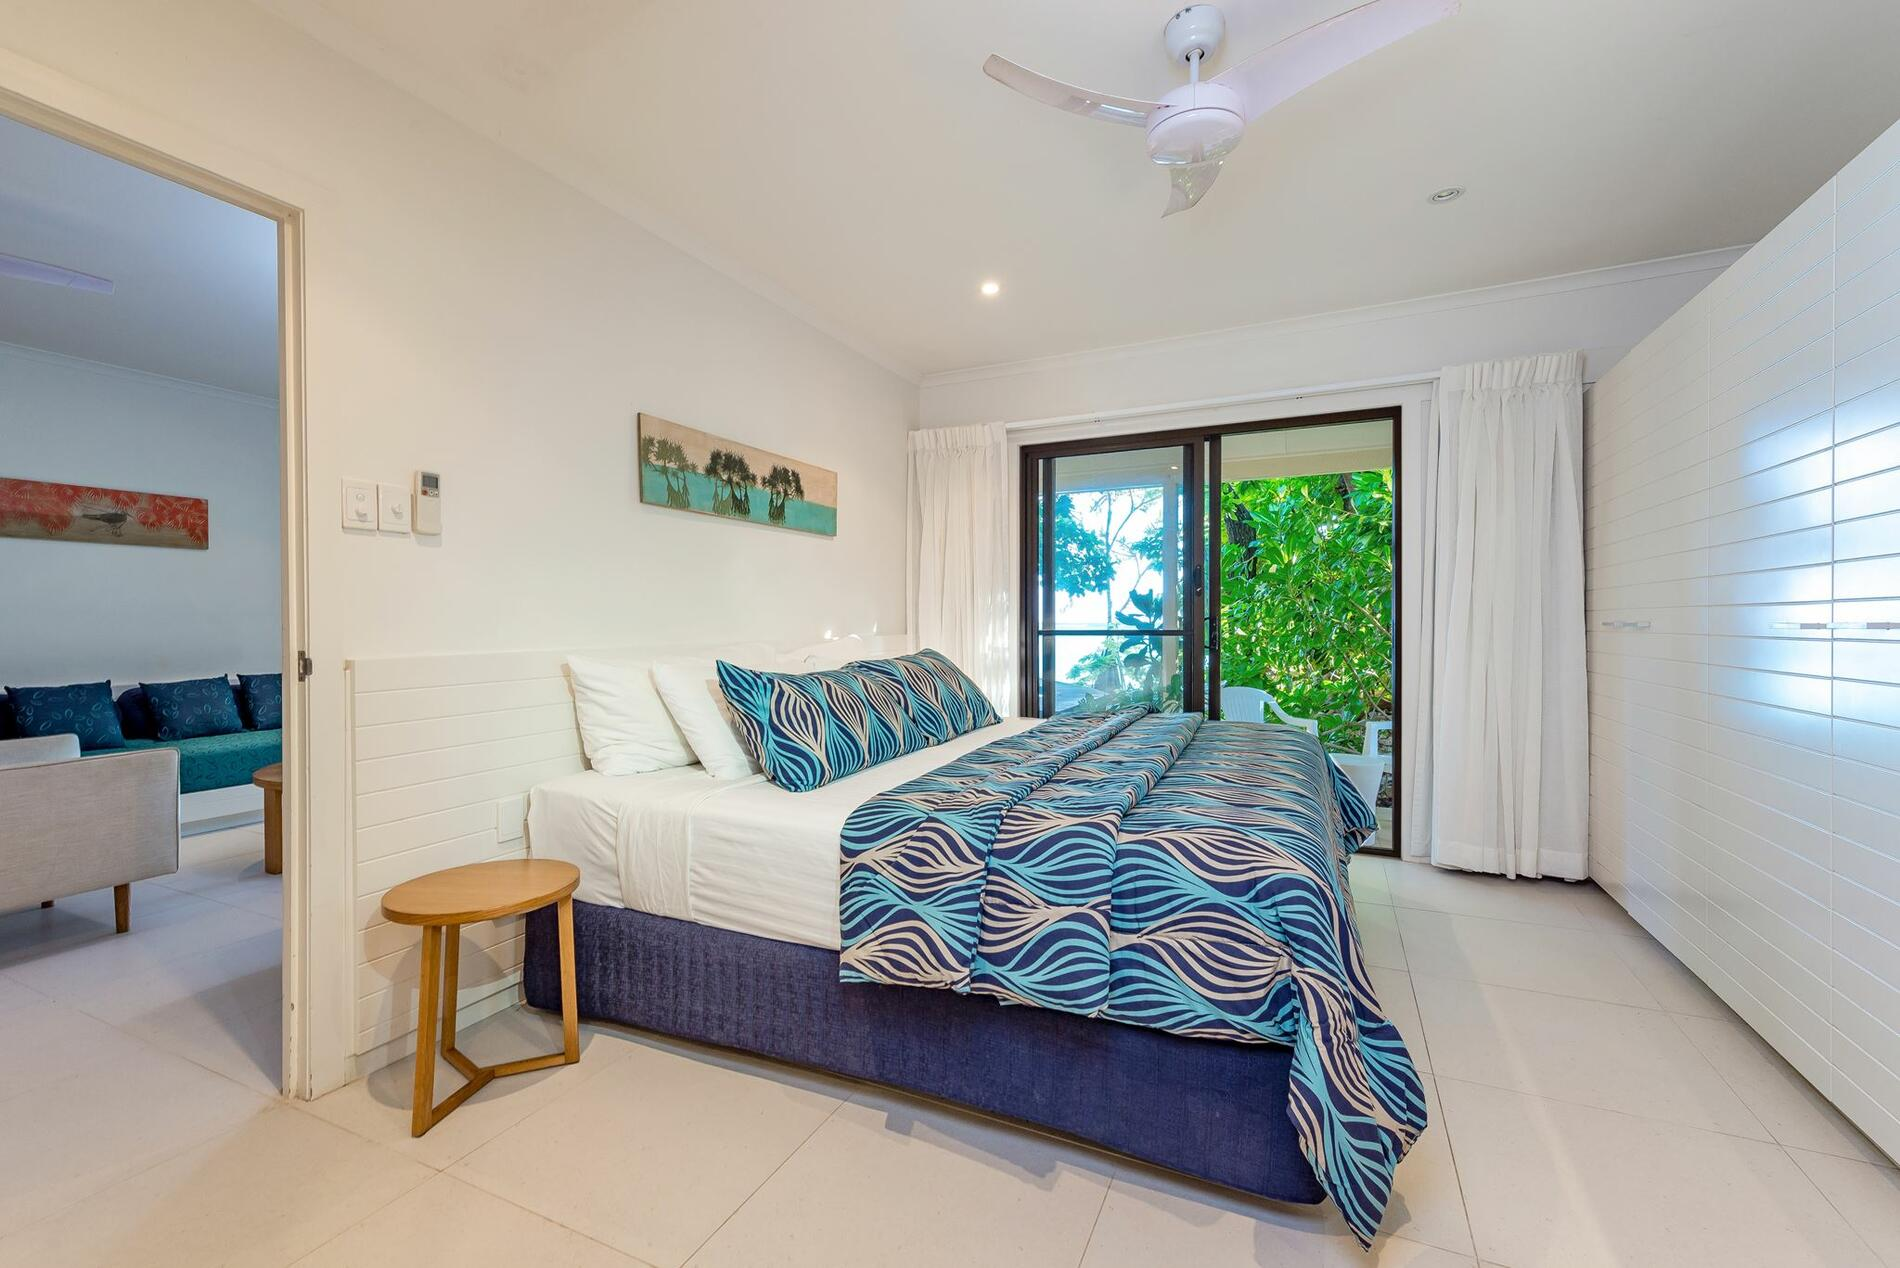 bedroom with a King bed at Heron Island Resort